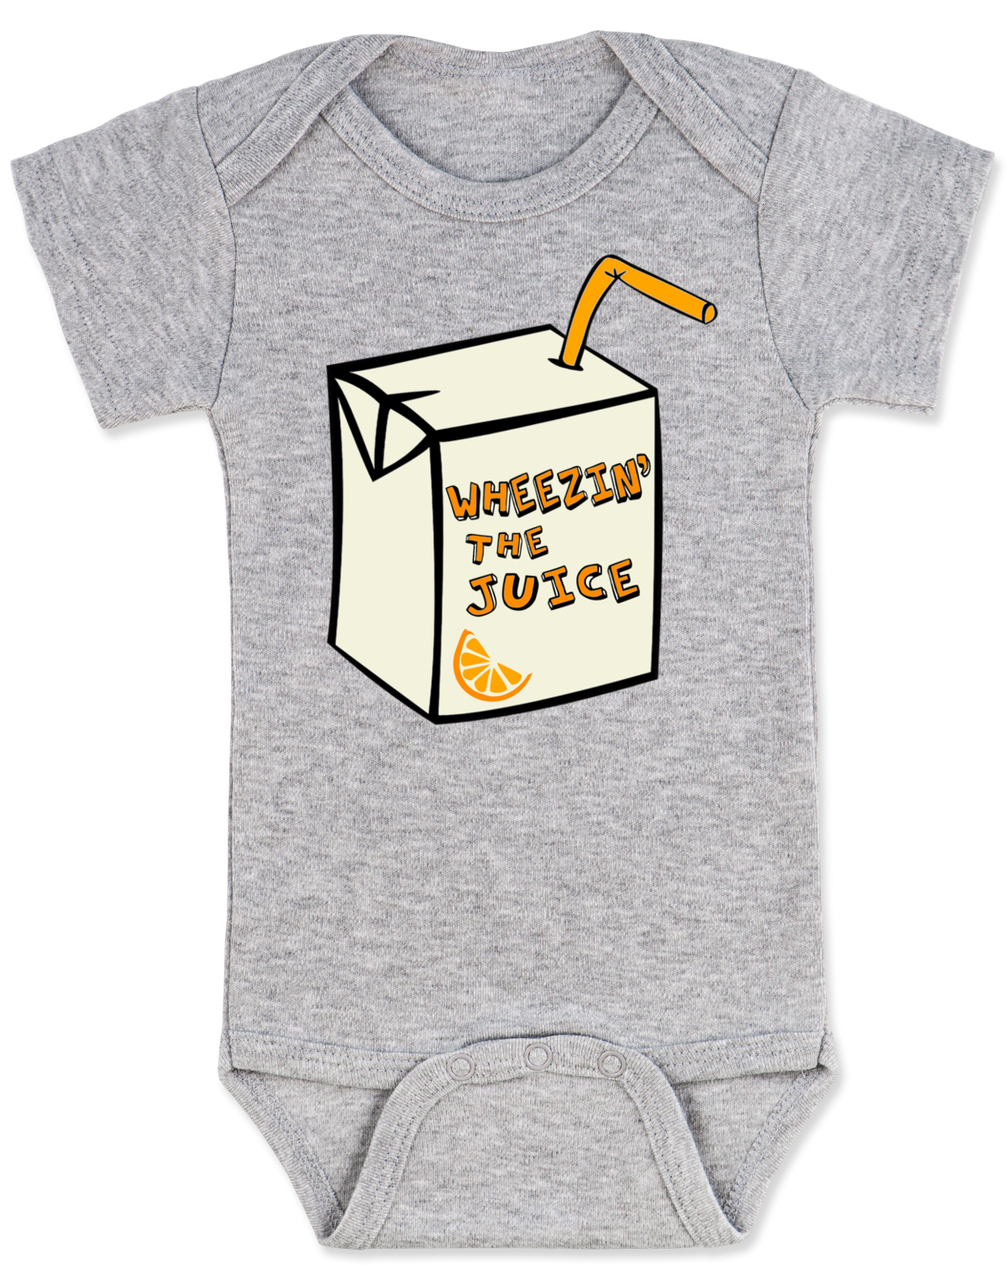 4b148b32 Wheezin the juice, wheeze the juice baby bodysuit, pauly shore, 90's baby  gift